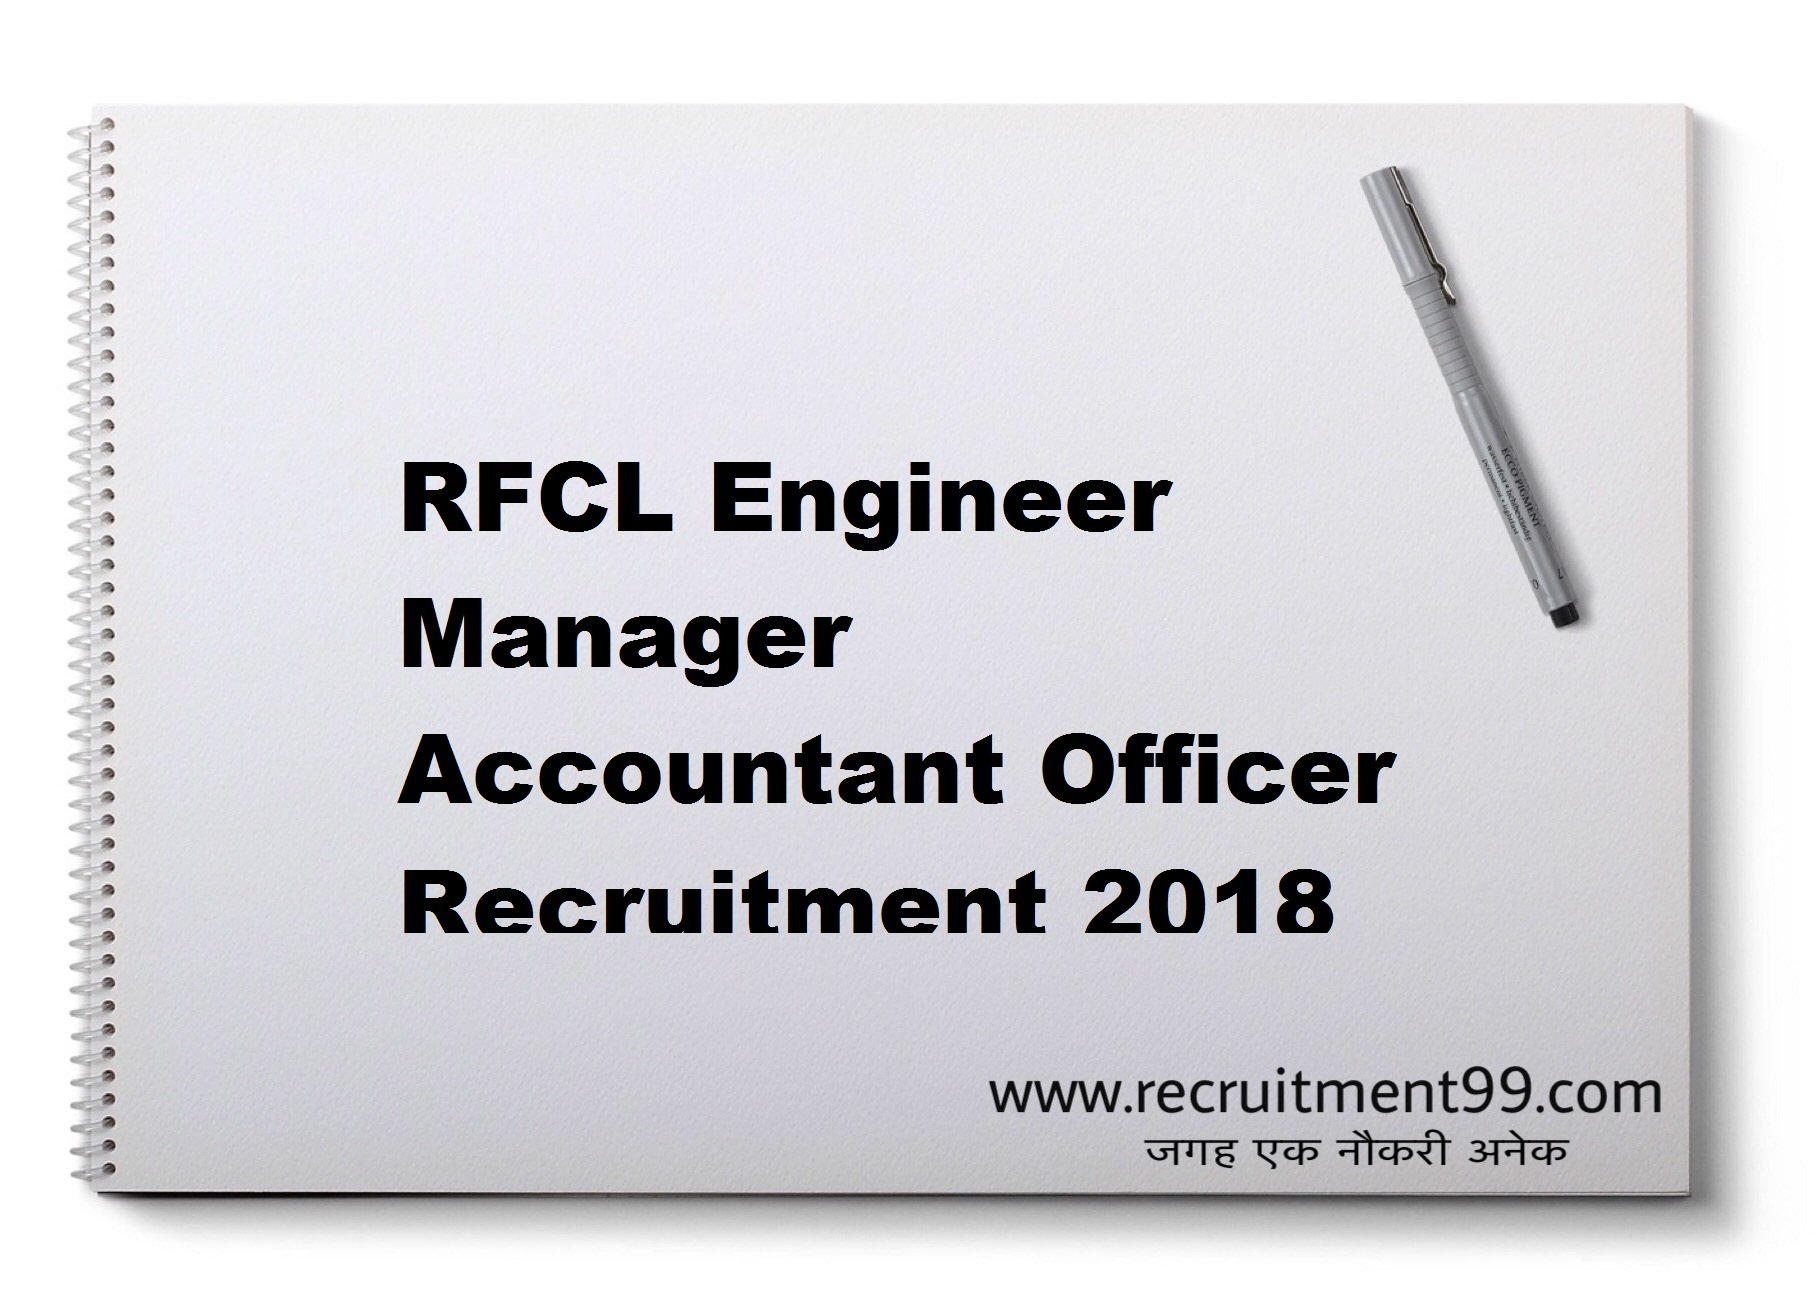 RFCL Engineer Manager Accountant Officer Recruitment Admit Card Result 2018